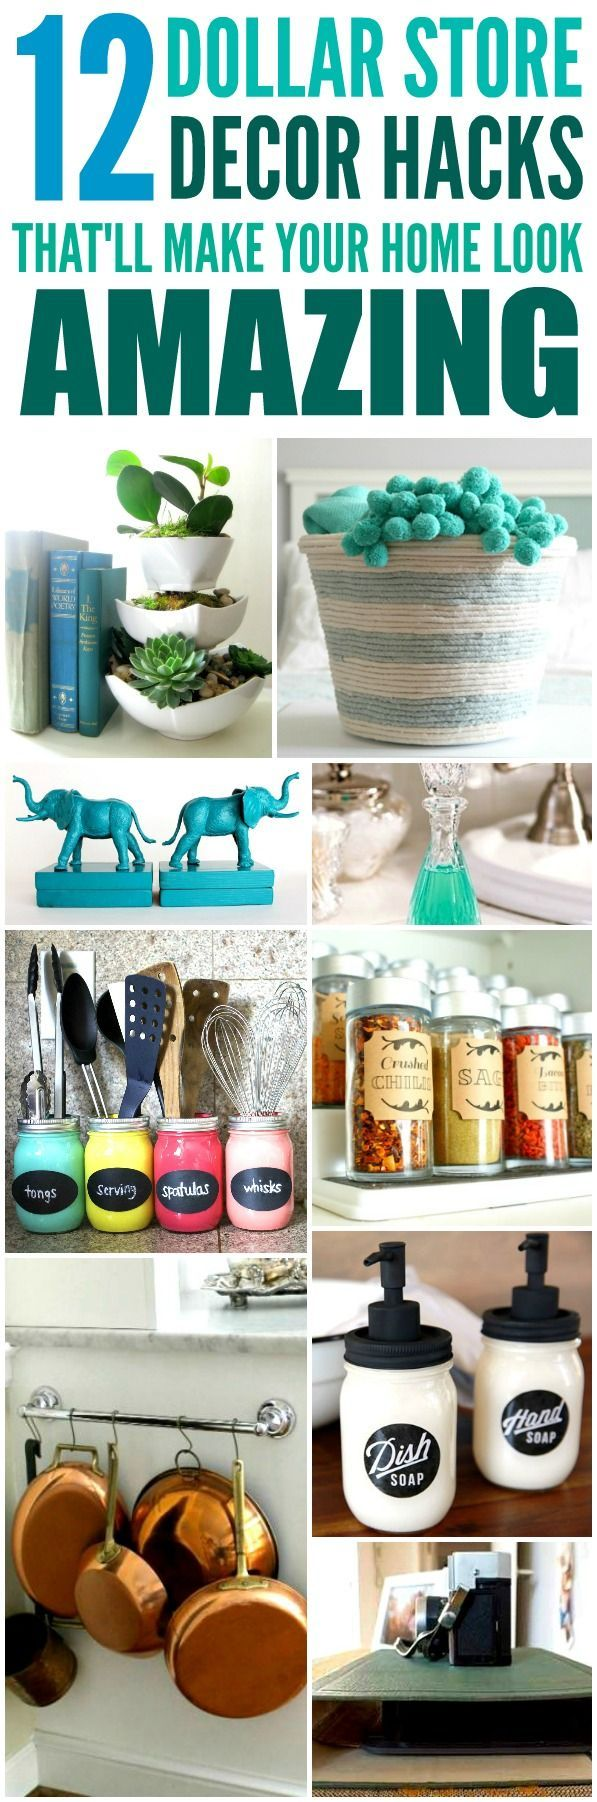 15 must see apartment hacks pins moving hacks apartment for Home decor hacks